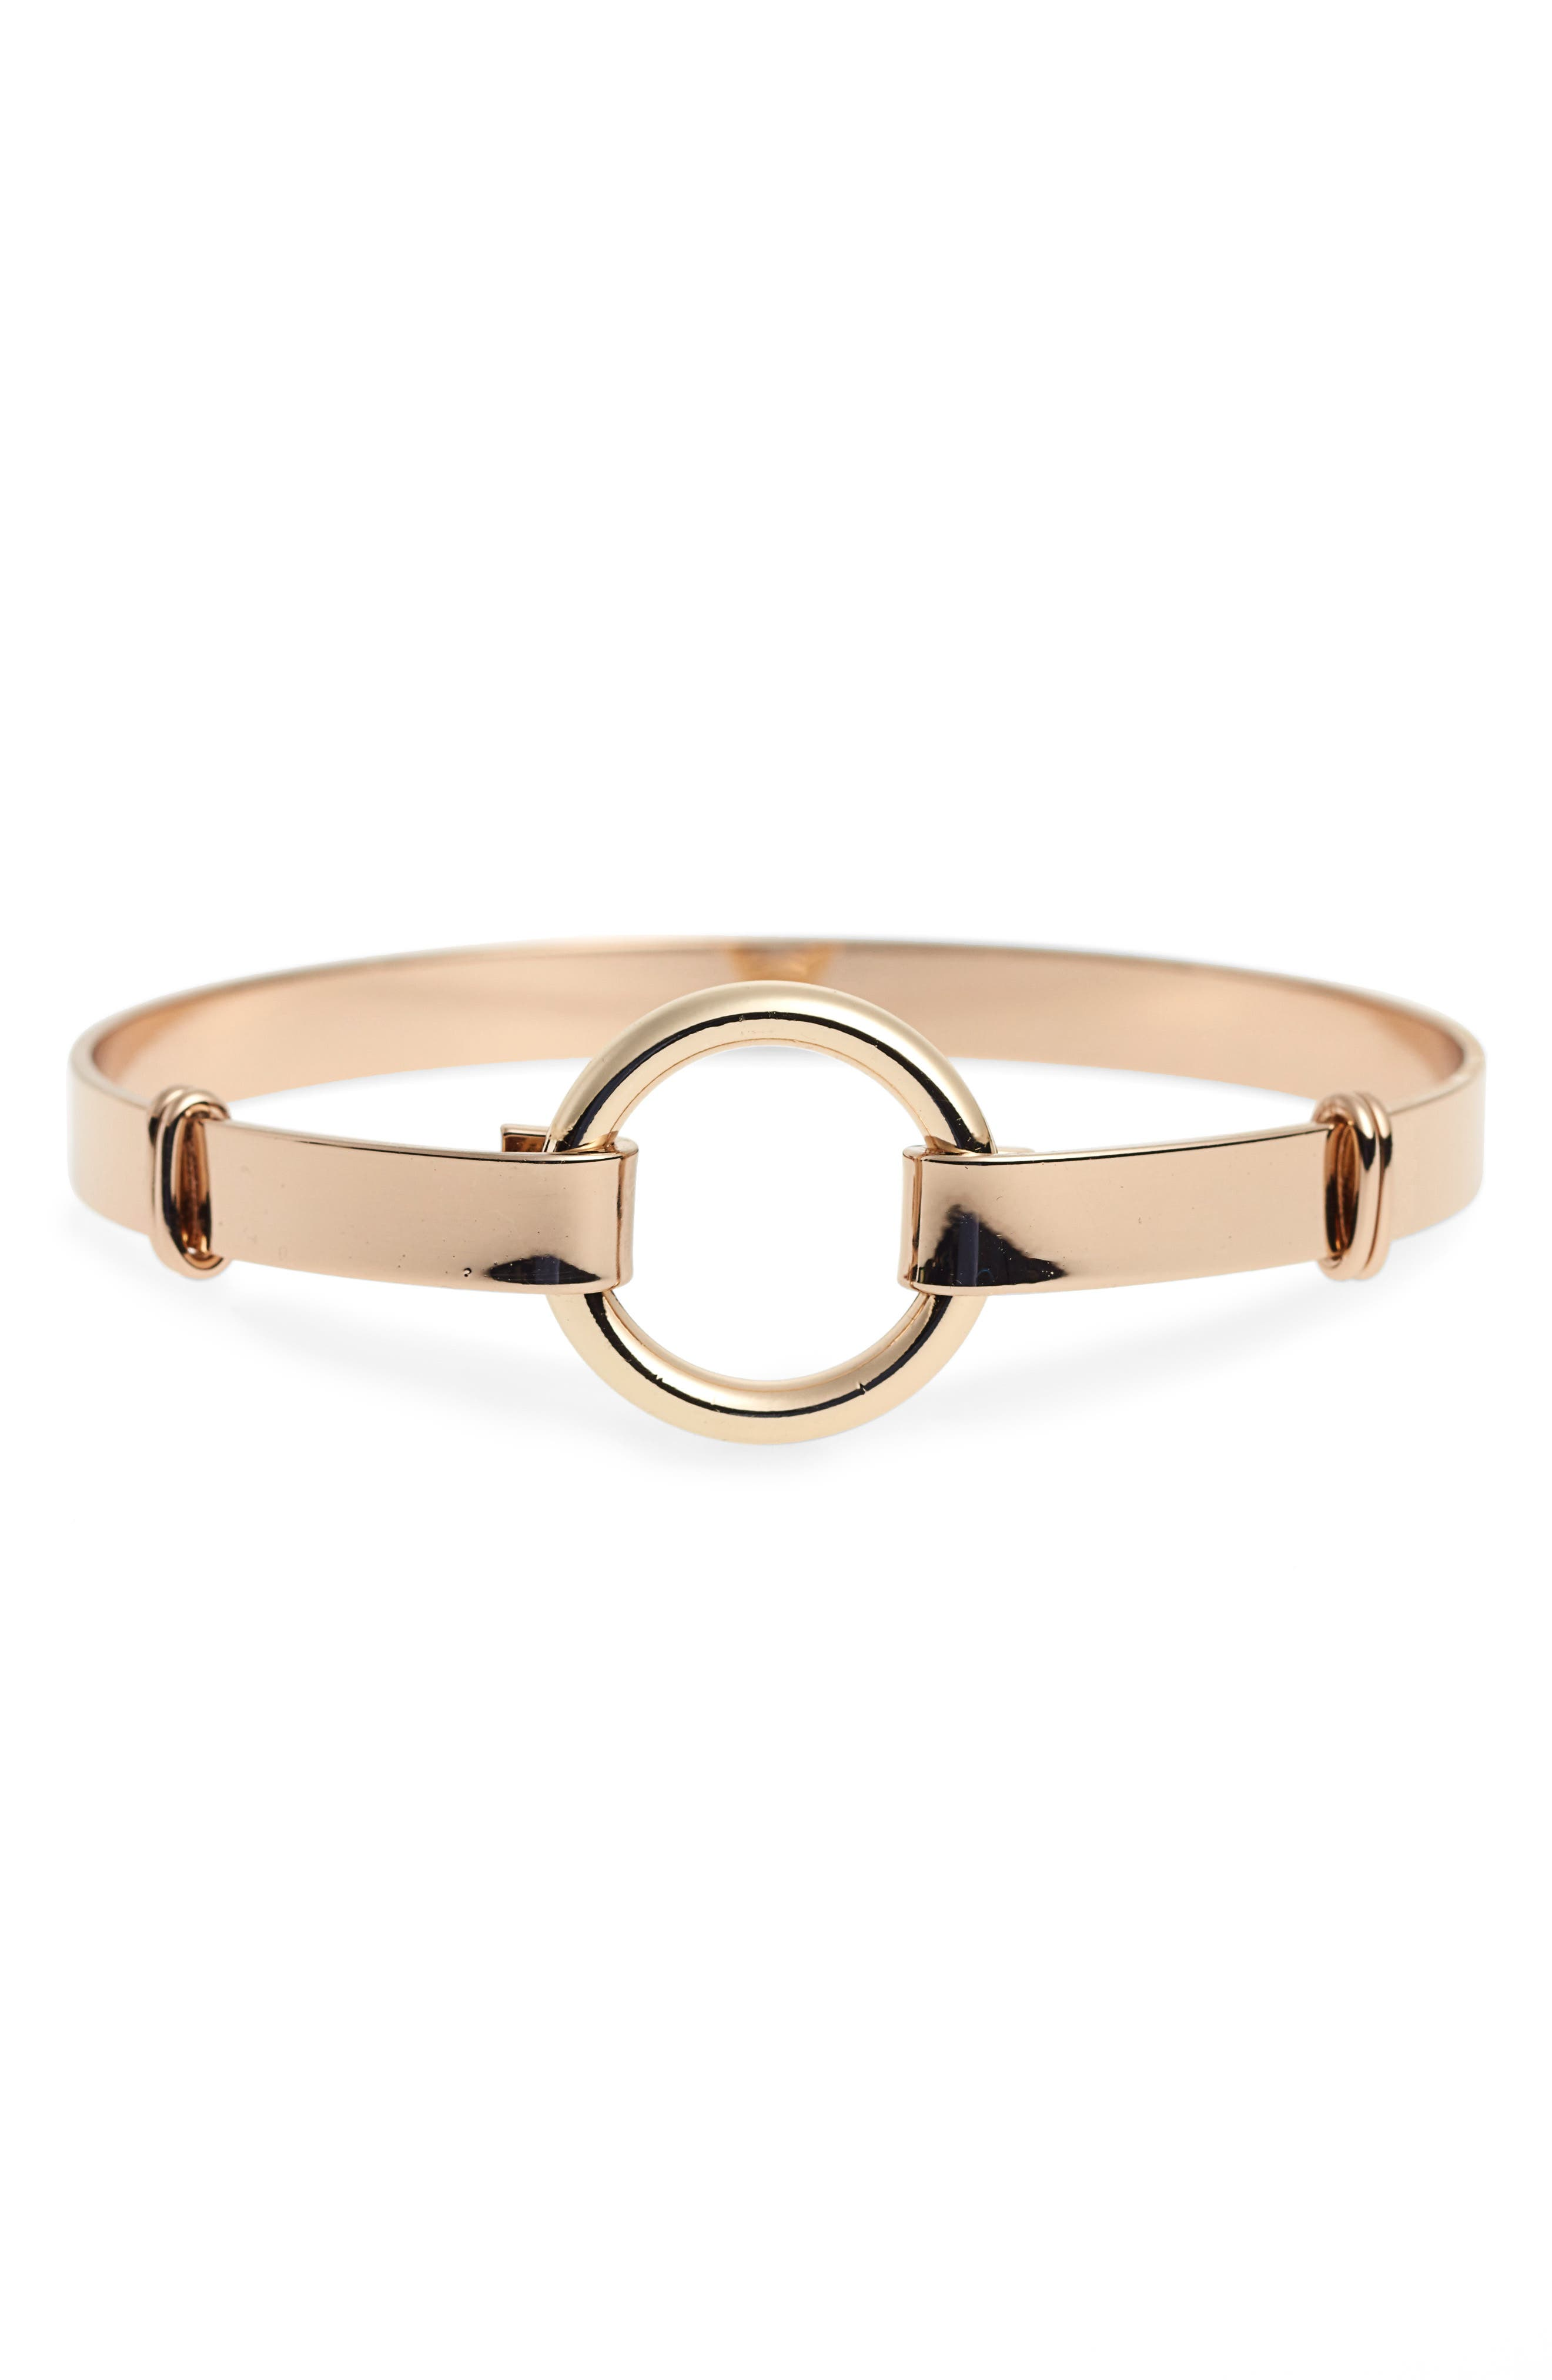 Open Circle Bangle,                         Main,                         color,